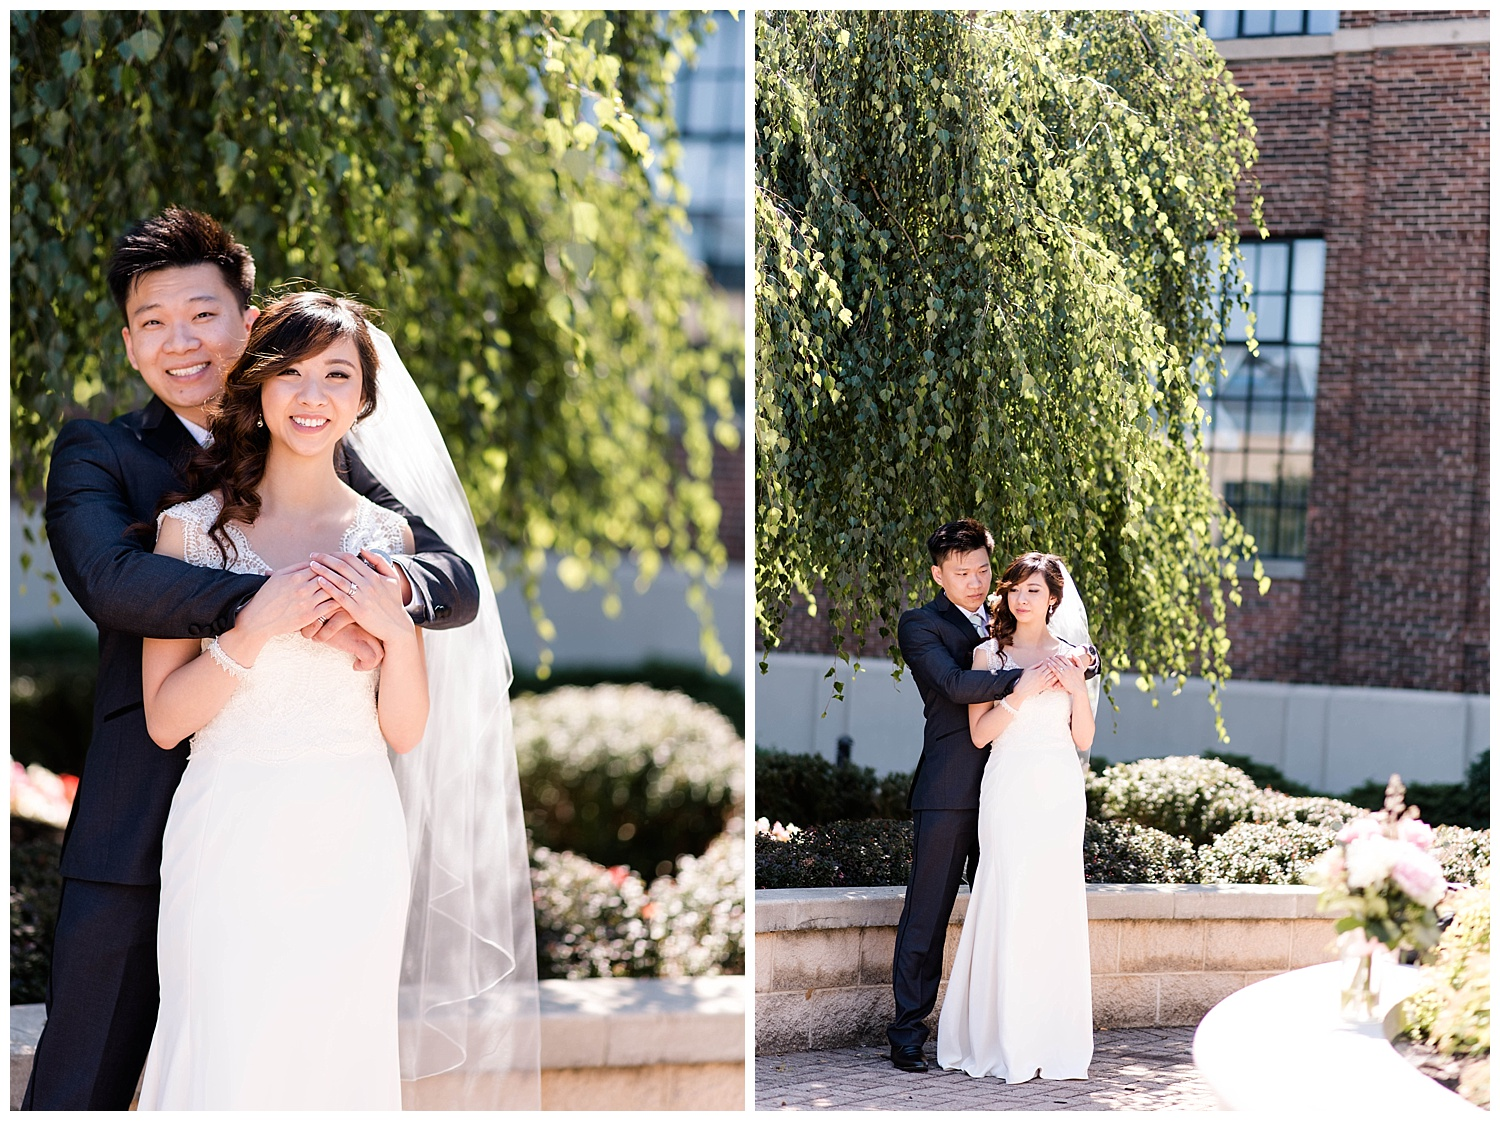 Weddings_by_Raisa_Photography_Saint_Mary_Magdalen_New_Vintage_Grand_Rapids_Michigan_Wedding_Photographer_0091.jpg